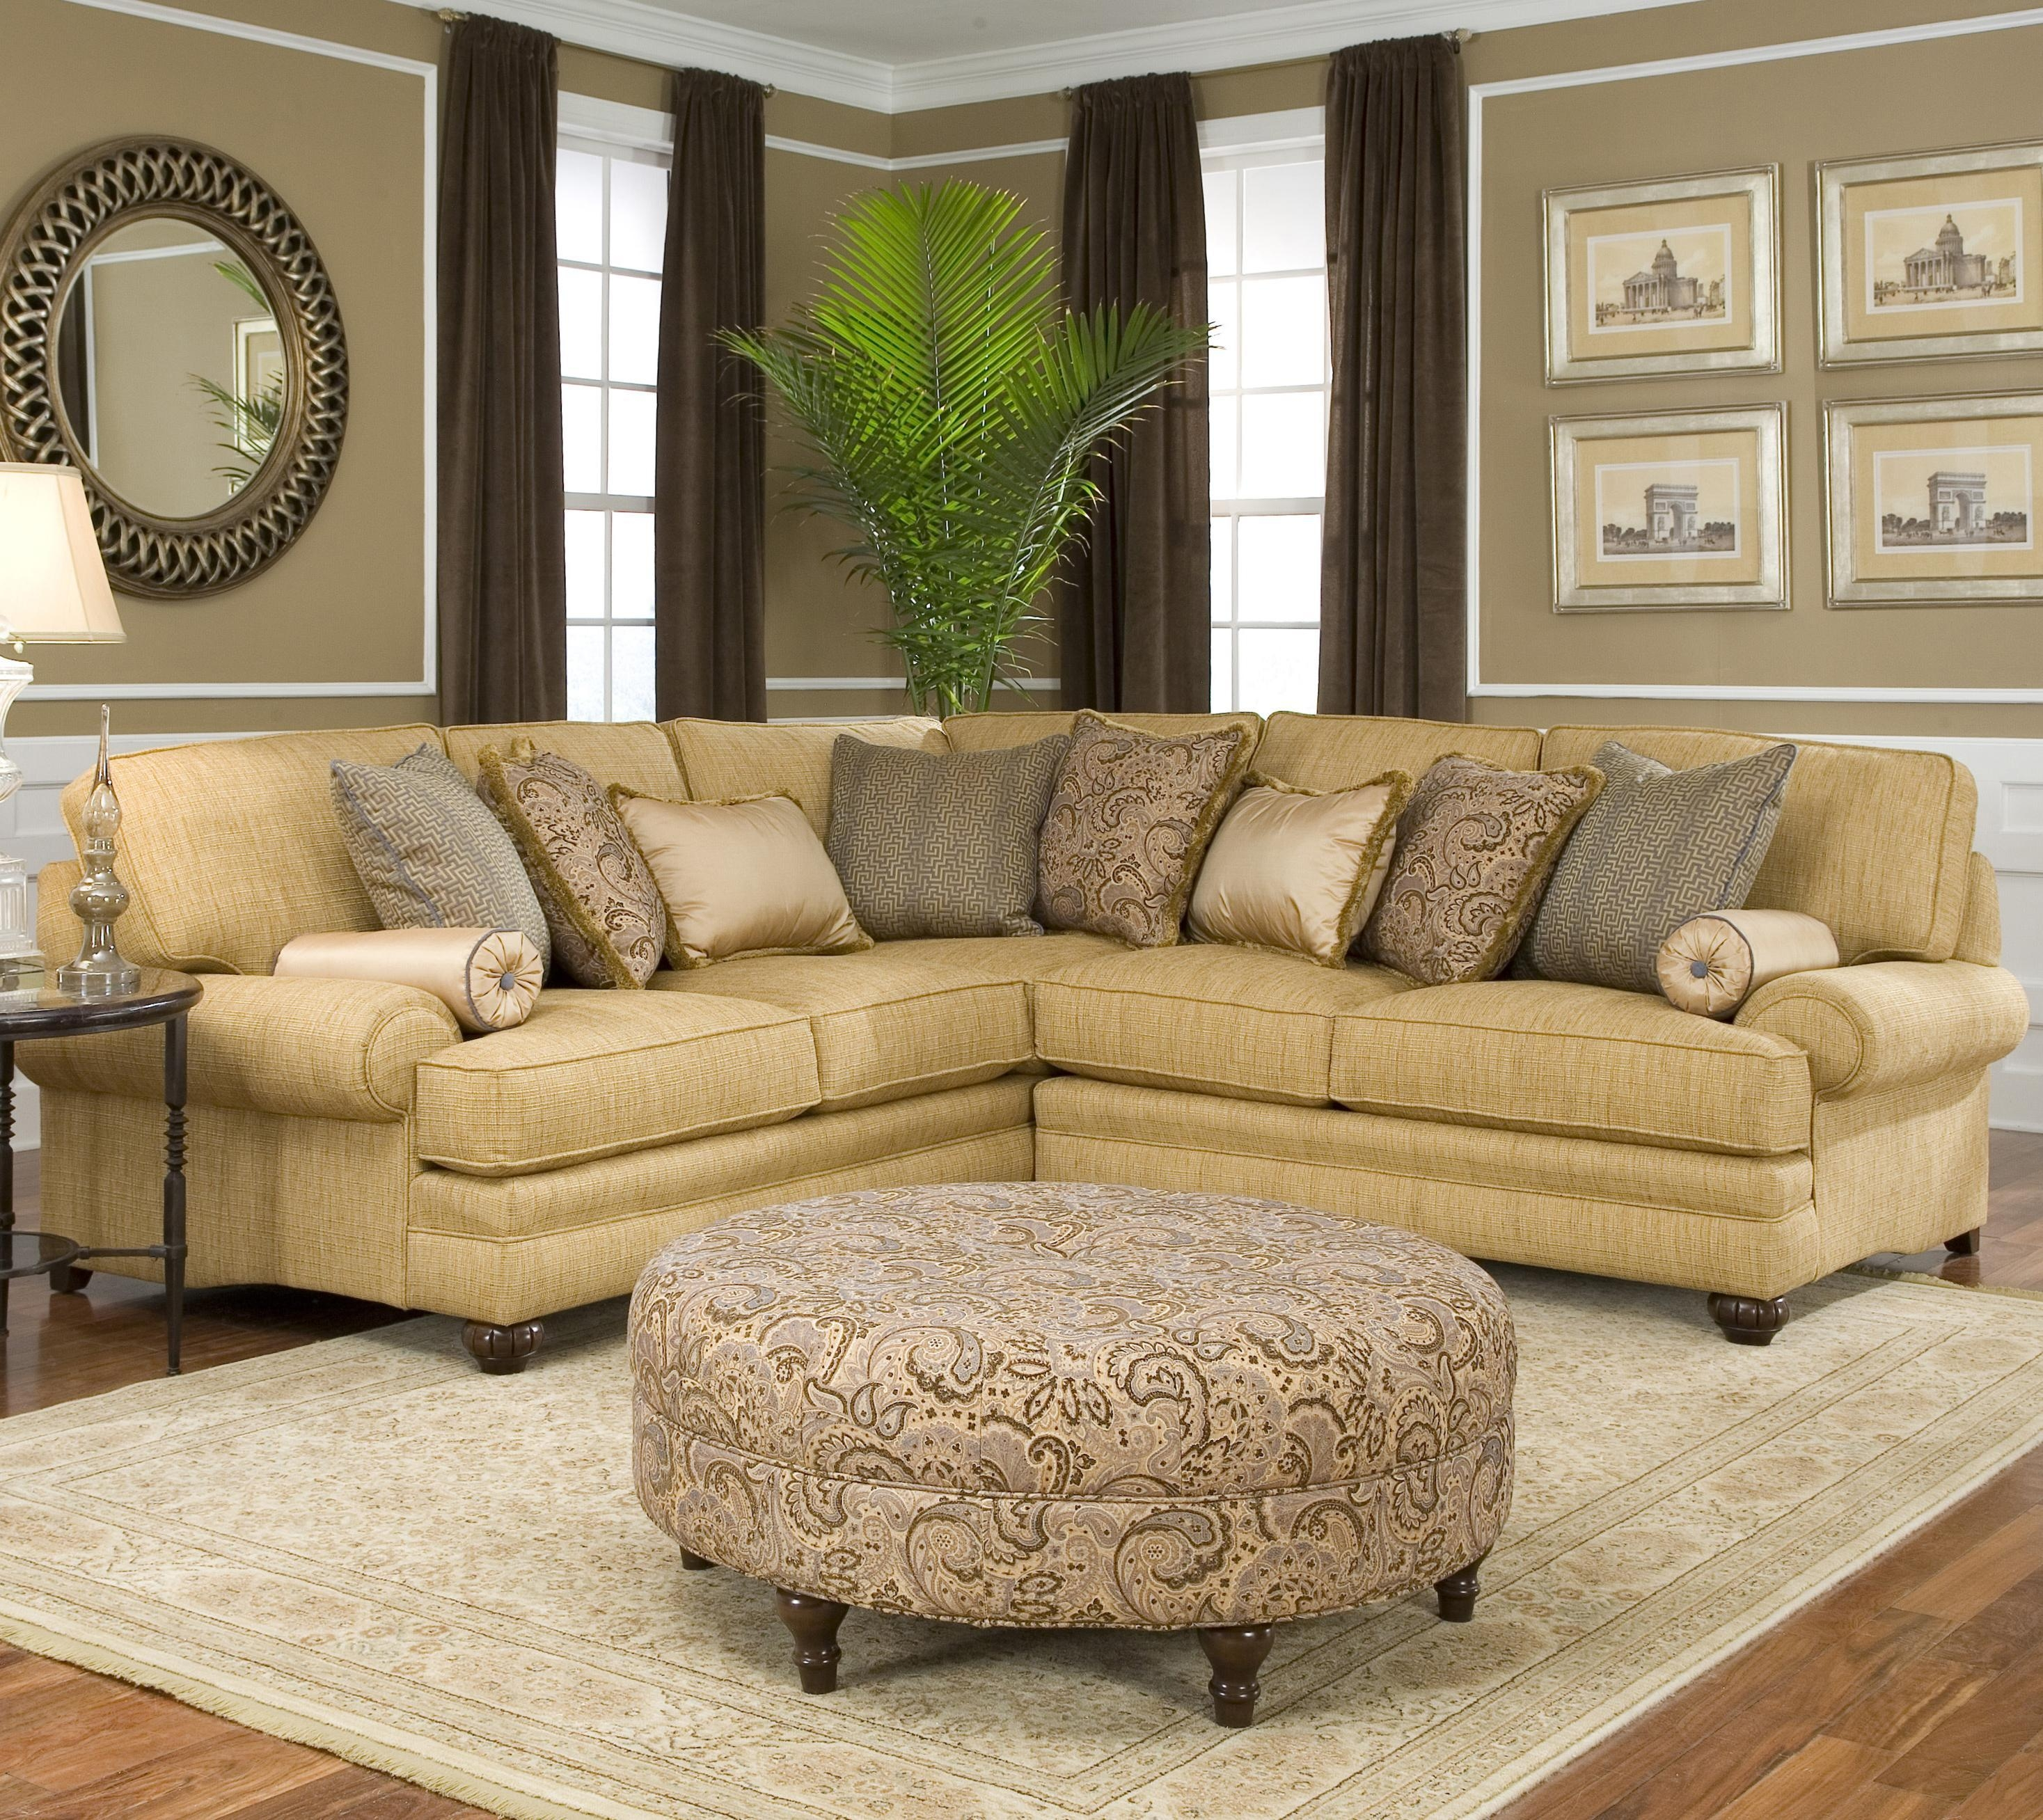 Traditional Styled Corner Sectional Sofasmith Brothers | Wolf For Smith Brothers Sofas (View 17 of 20)